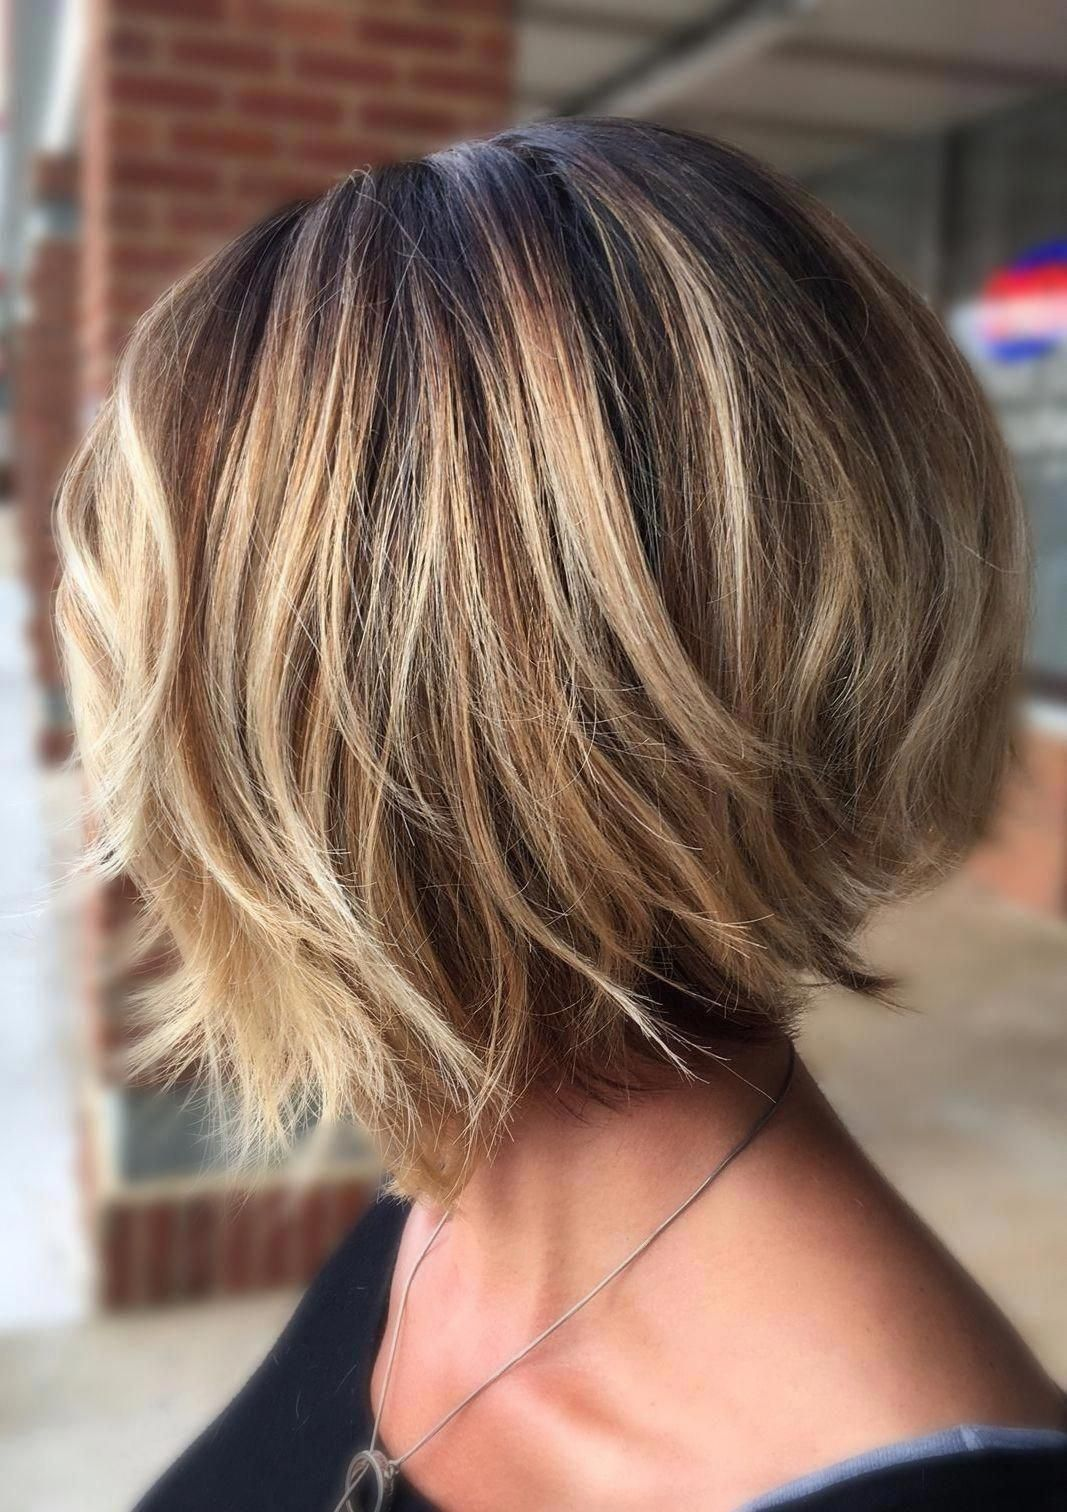 Stylish Layered Bob Hairstyles Bobhairstyles Frisuren Bob Frisur